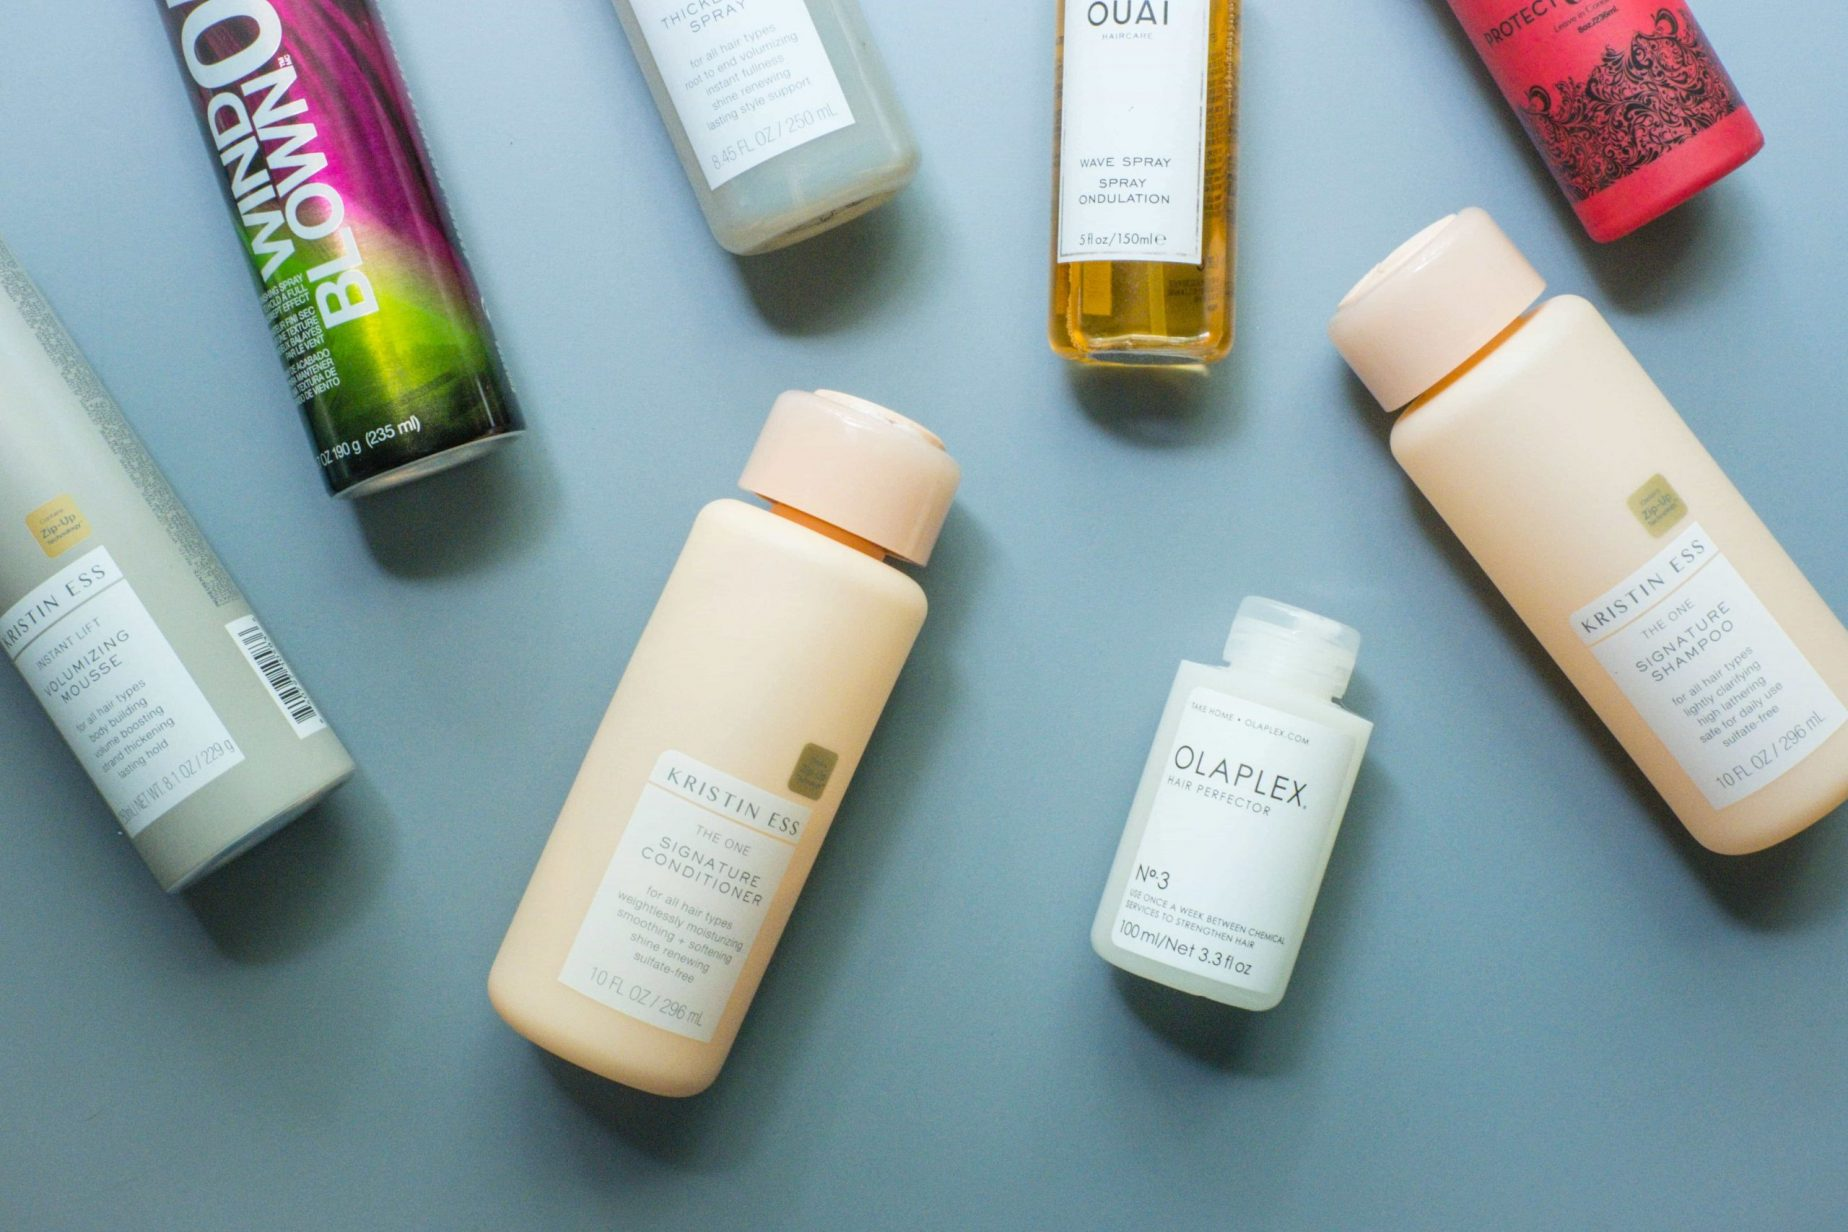 7 Hair Products I'll Keep Repurchasing #whatsavvysaid #ontheblog #wellness #lifestyle #haircare #beautyprotector #ouai #olaplex #redken #kristiness #healthyhair